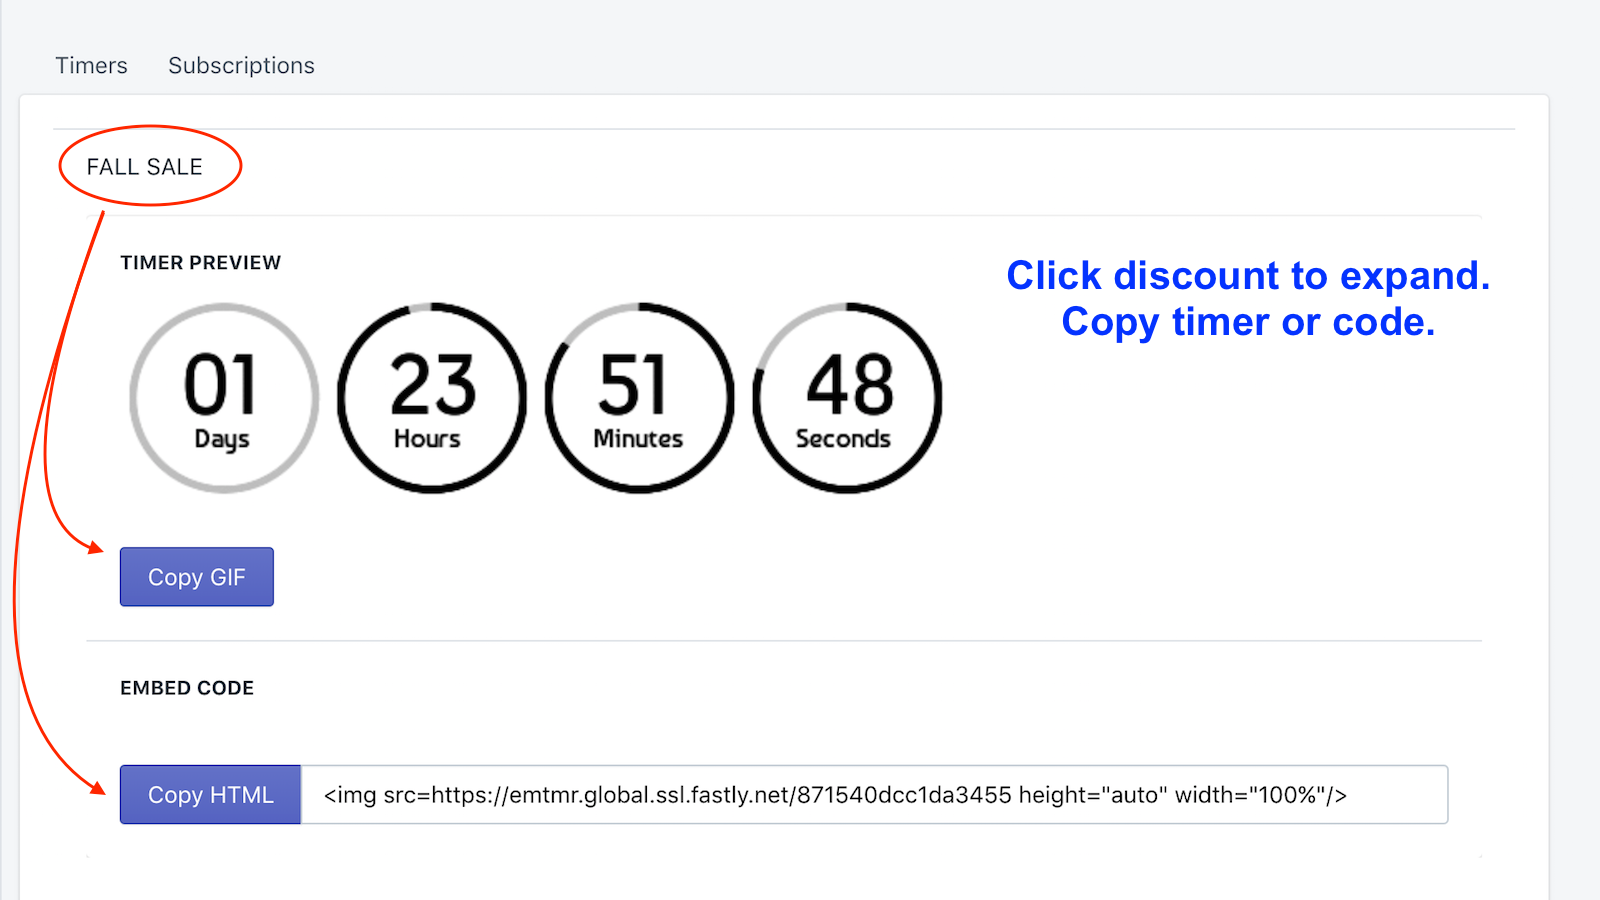 Click to expand and copy discount timer